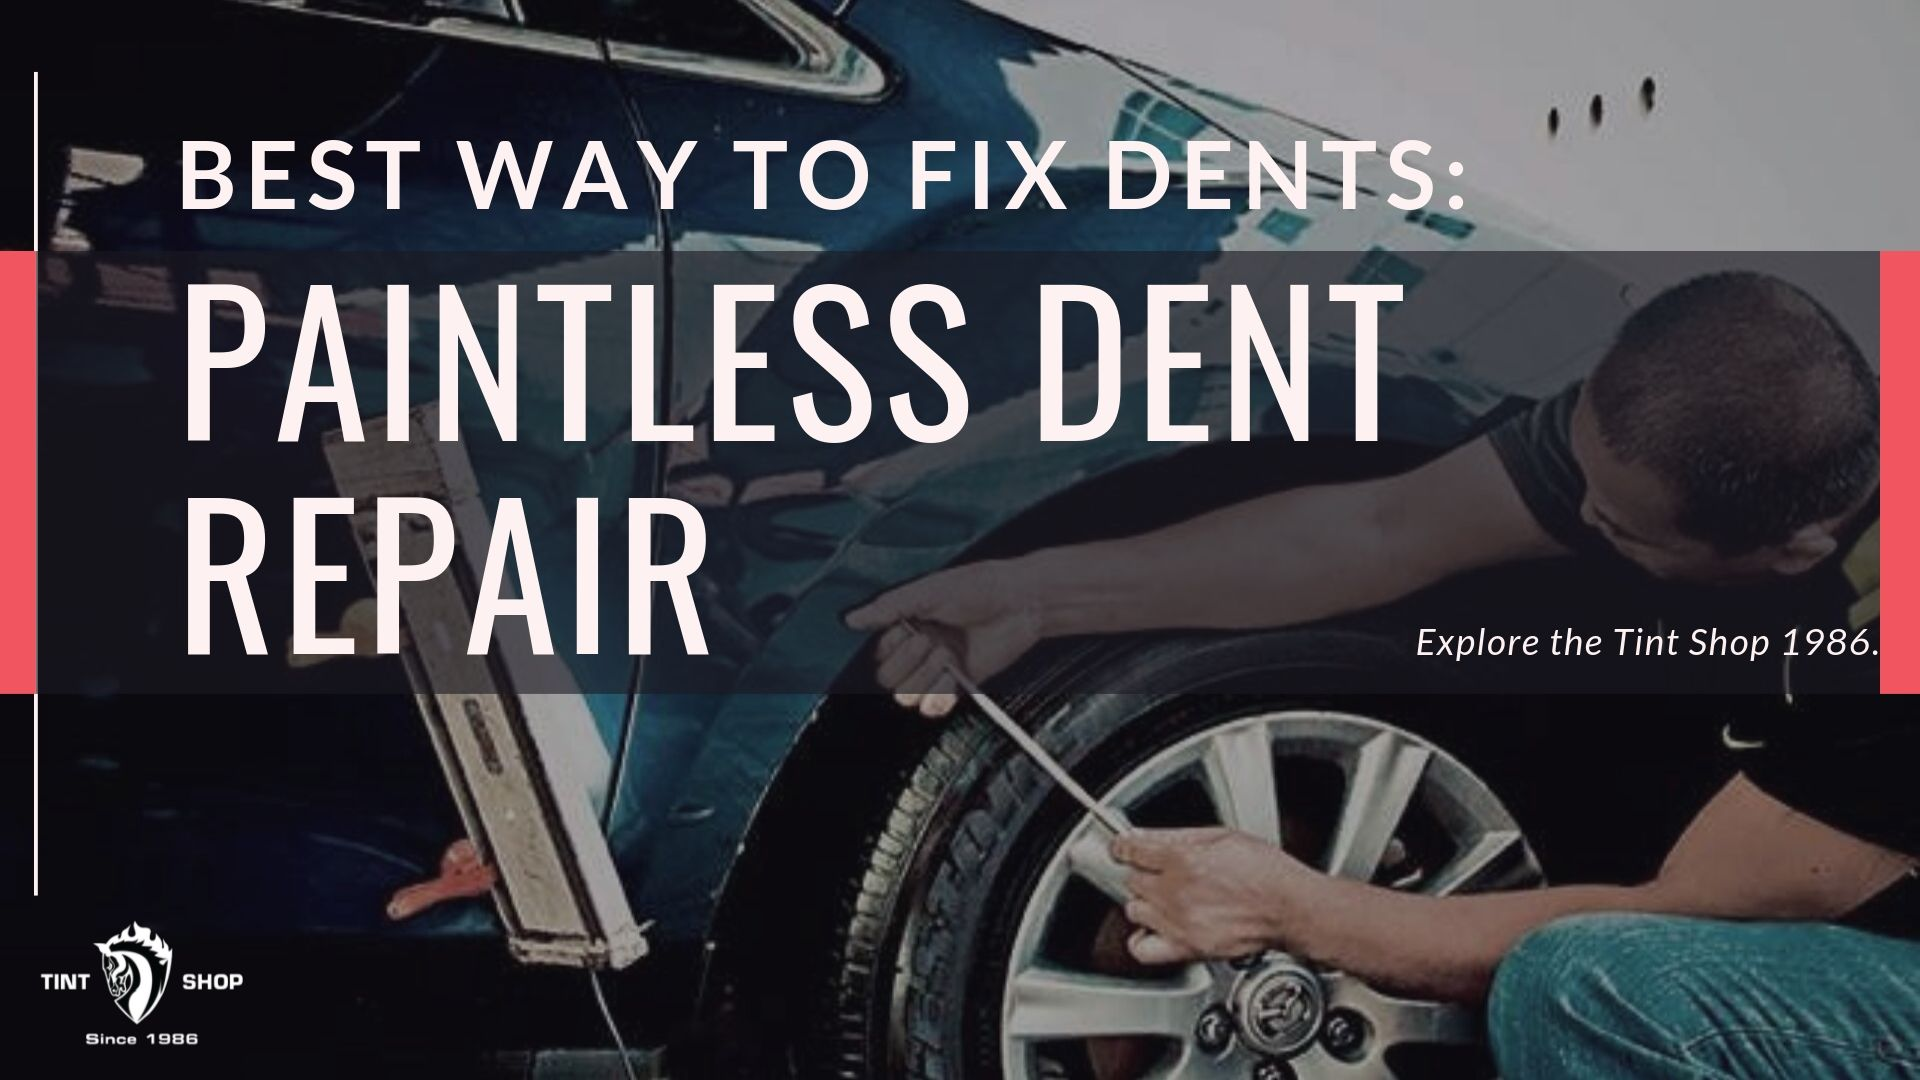 Best Way To Fix Dents: Paintless Dent Repair